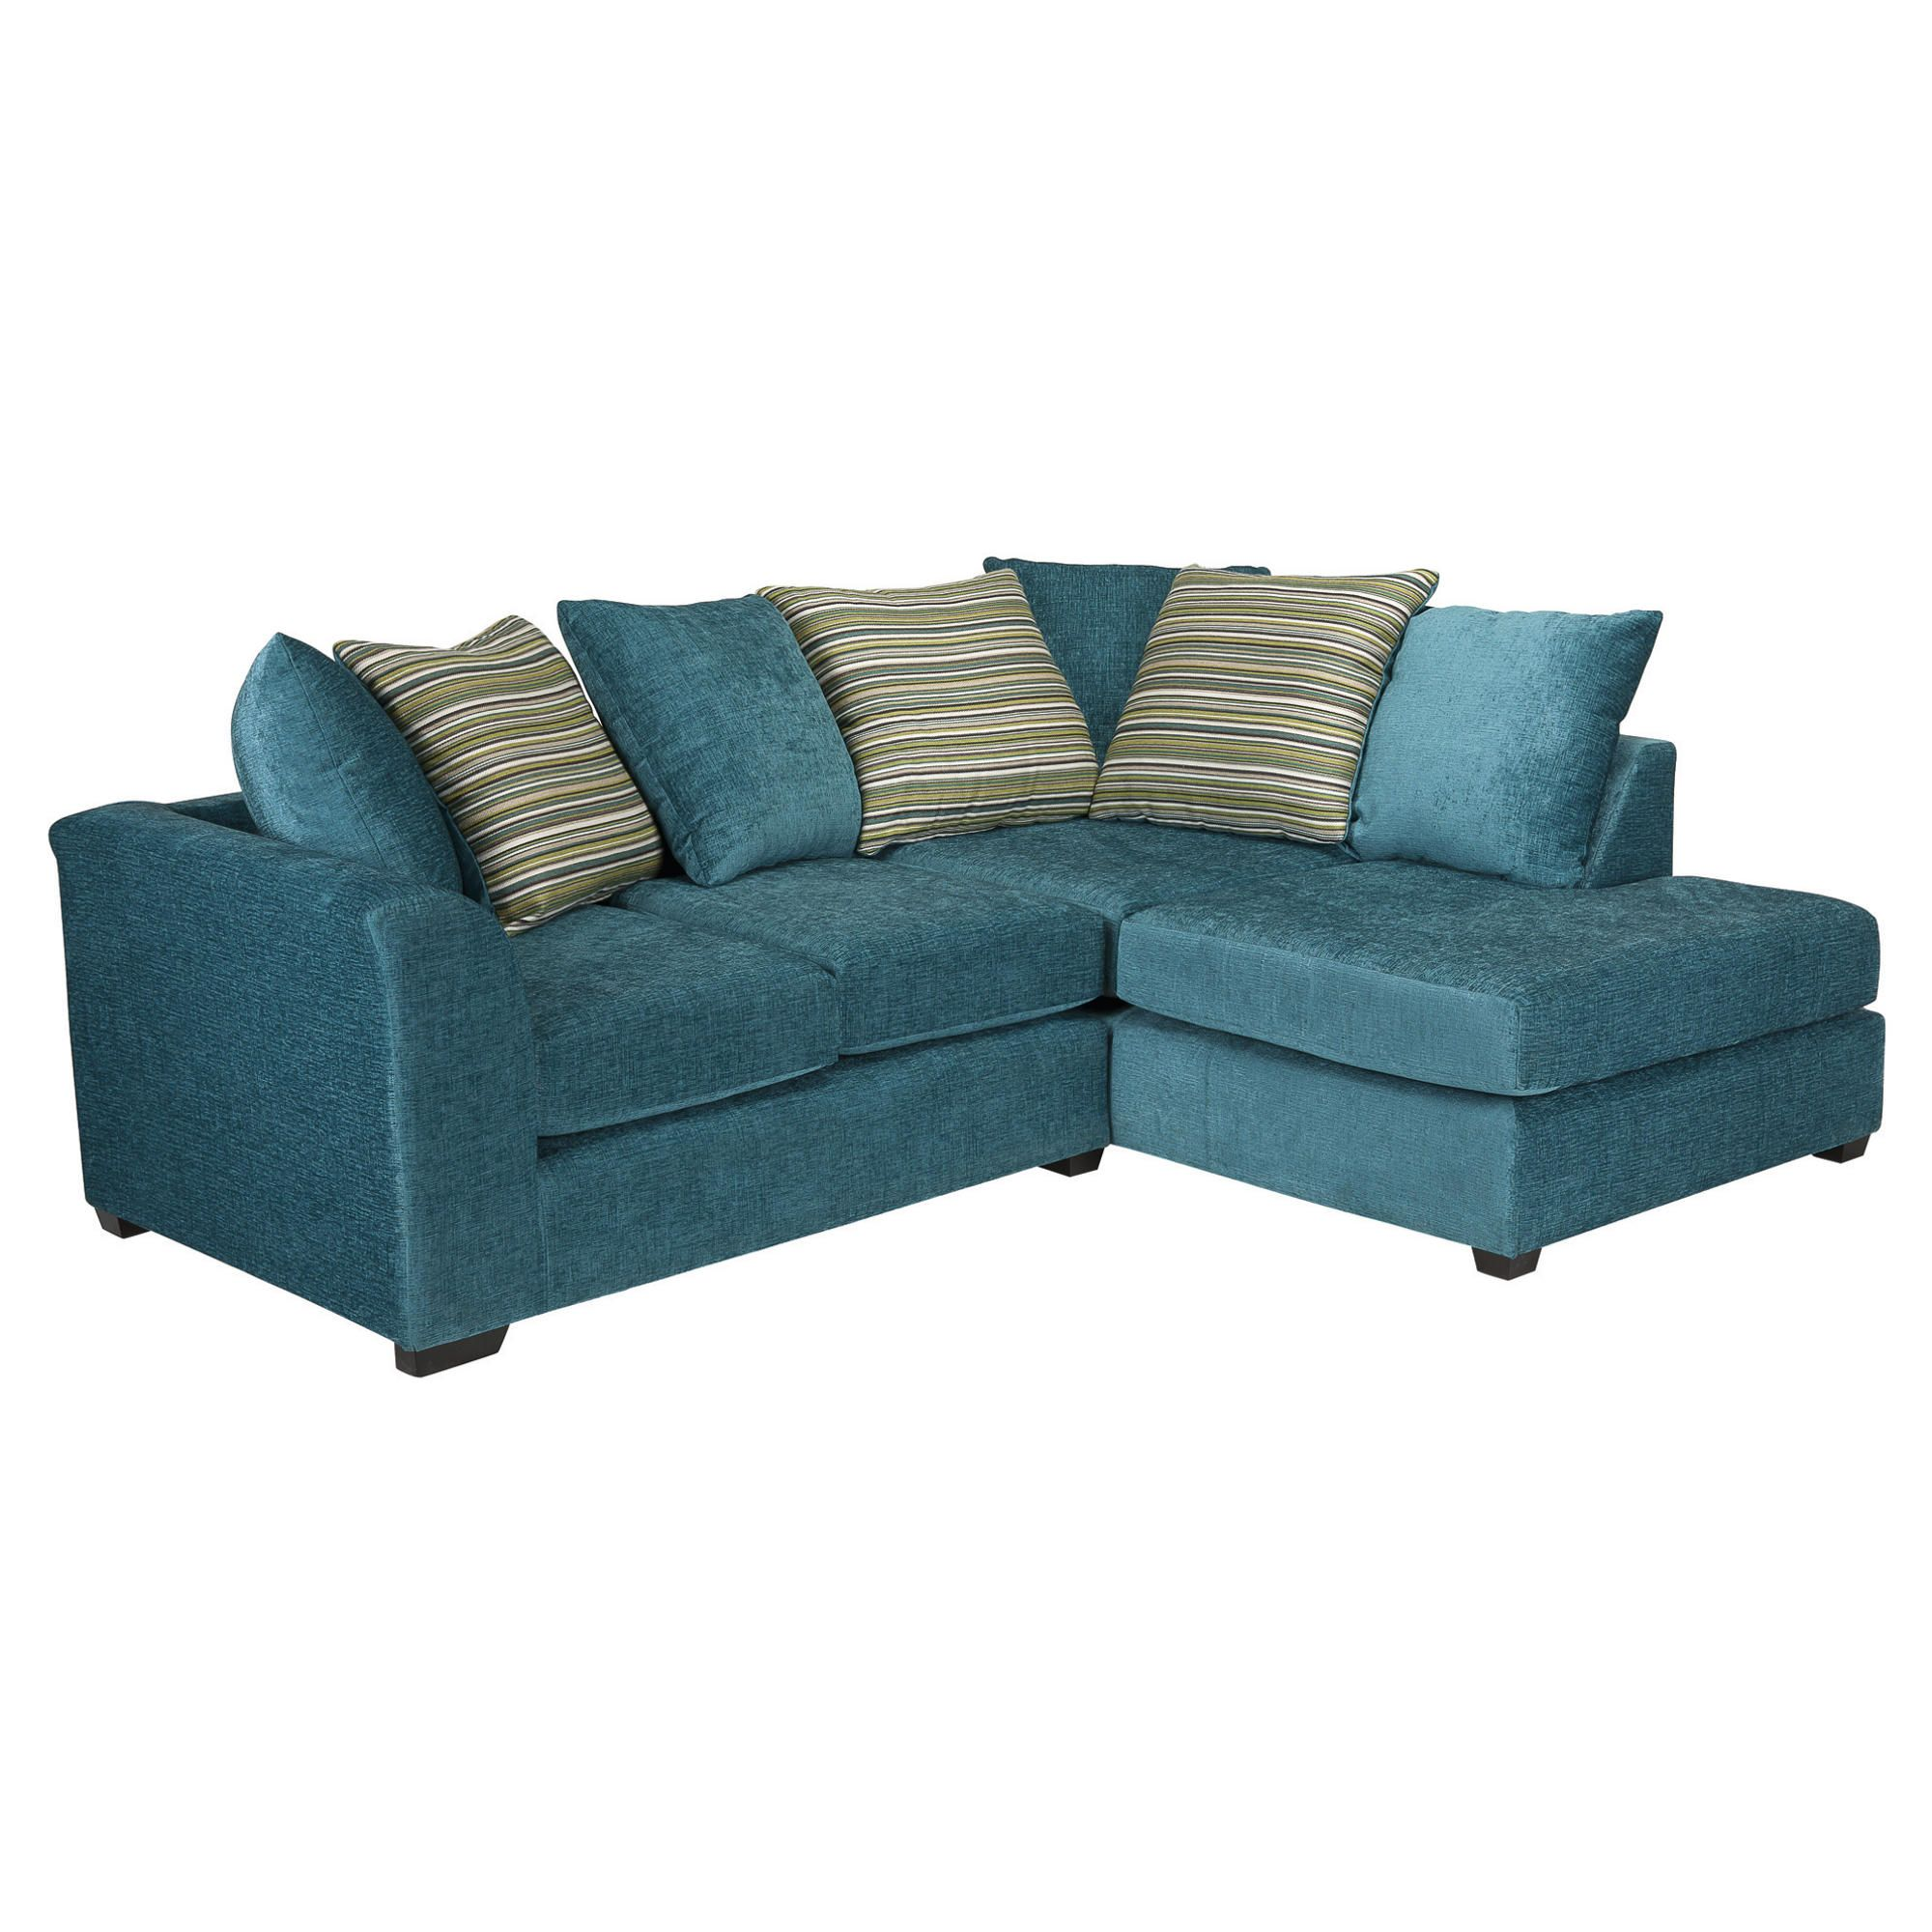 Toronto Fabric Corner Sofa Teal right hand facing at Tescos Direct